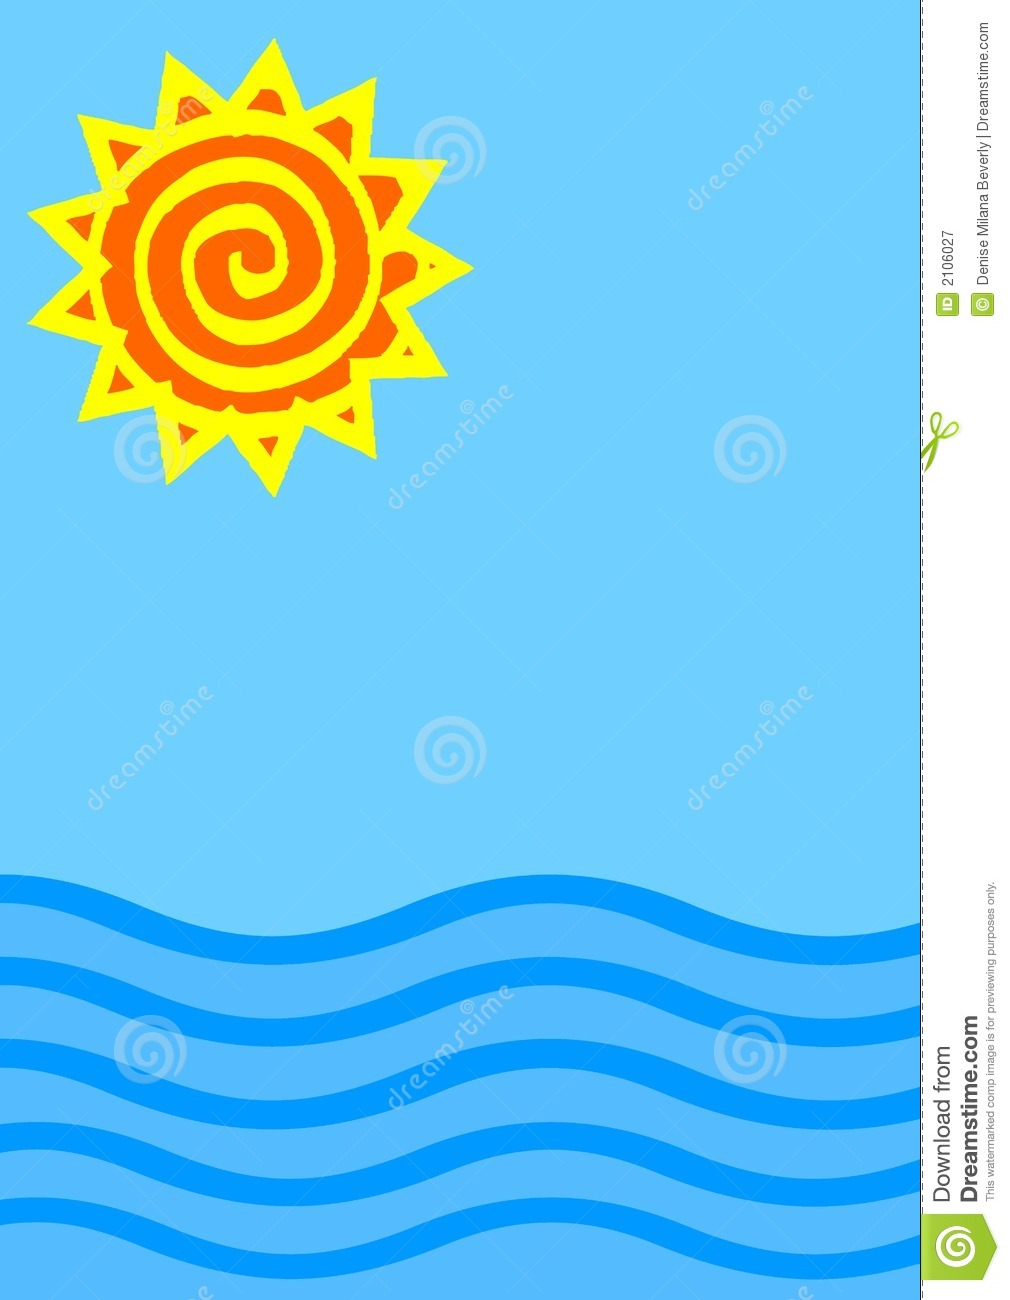 Sea And Sun Clipart - Clipart Kid